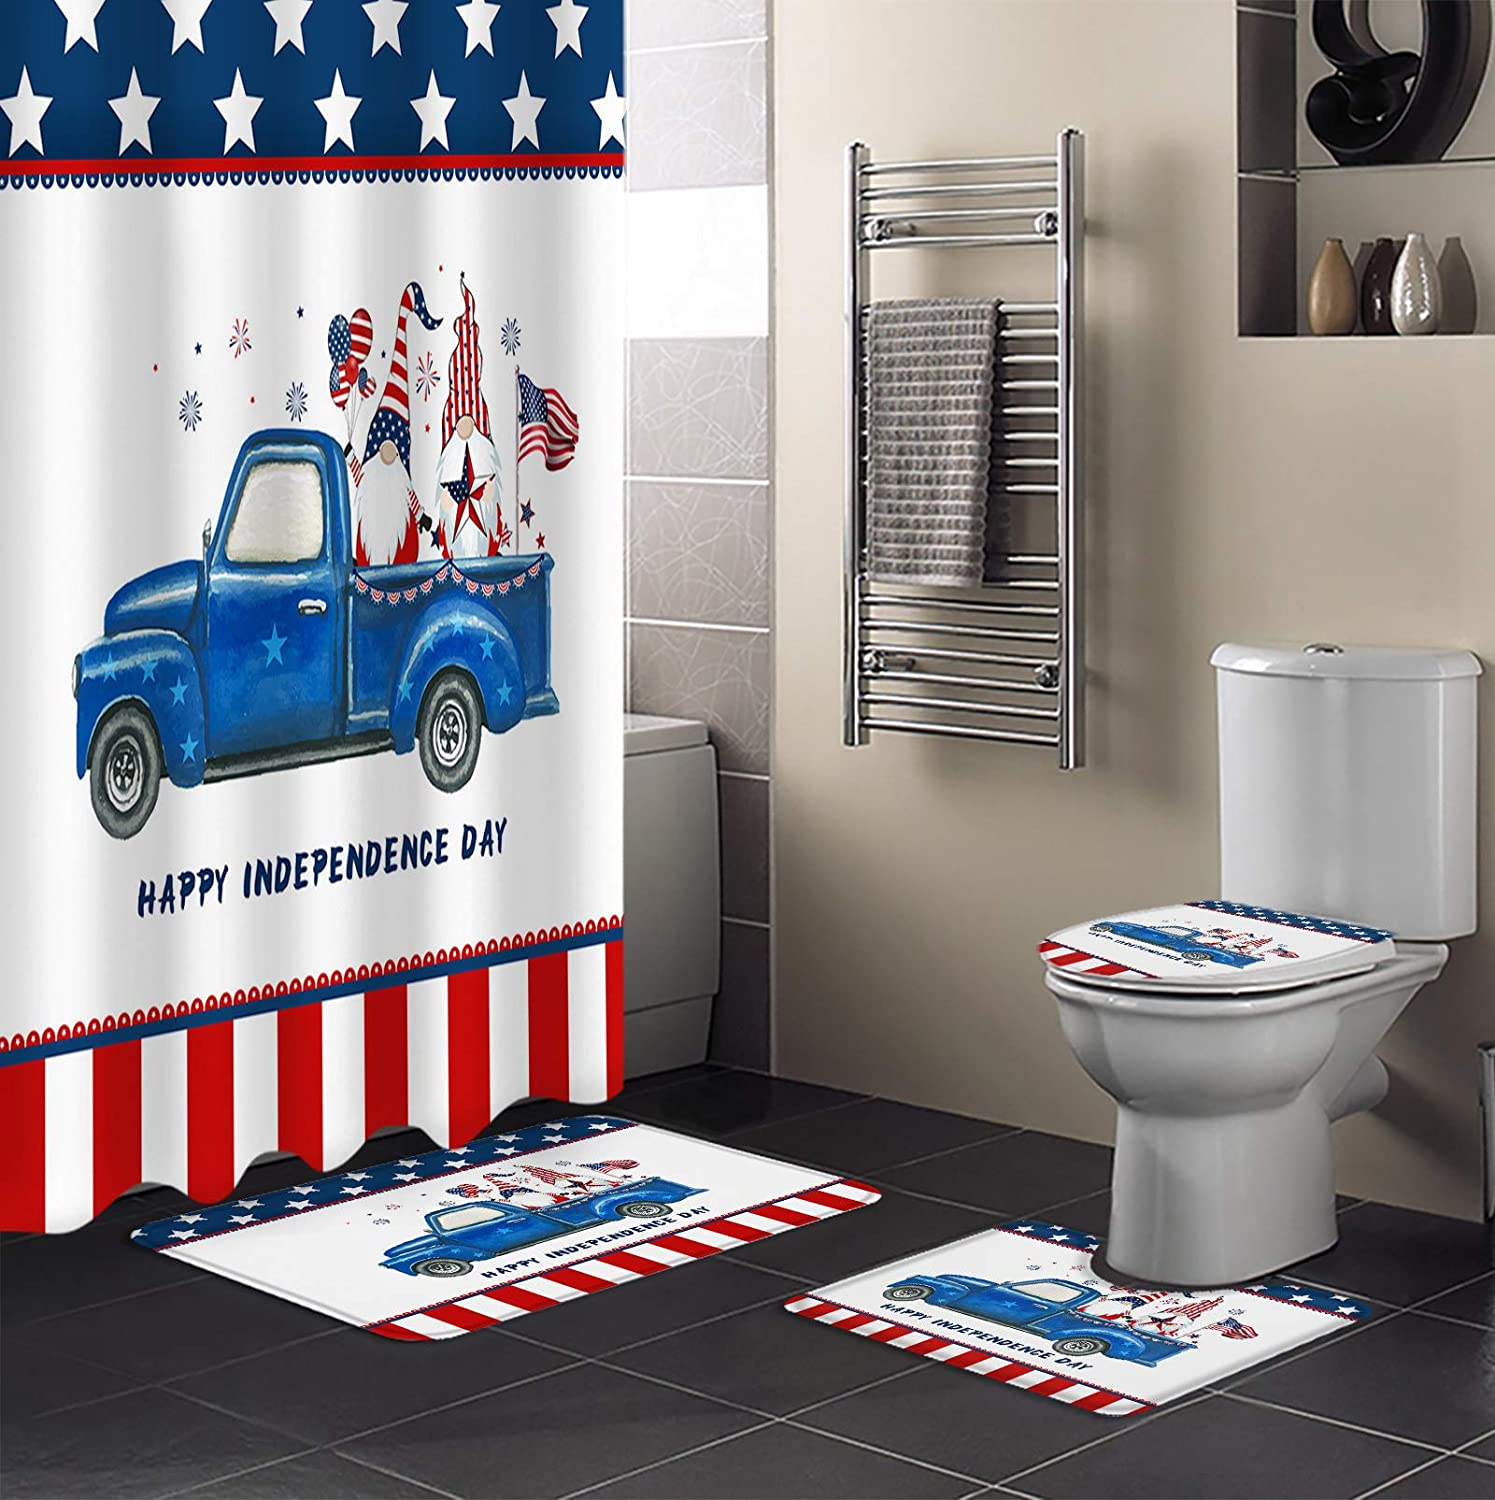 4 Piece Shower Curtain Max 40% OFF Daily bargain sale Sets Independence Truck Day Cute Dwarf Am